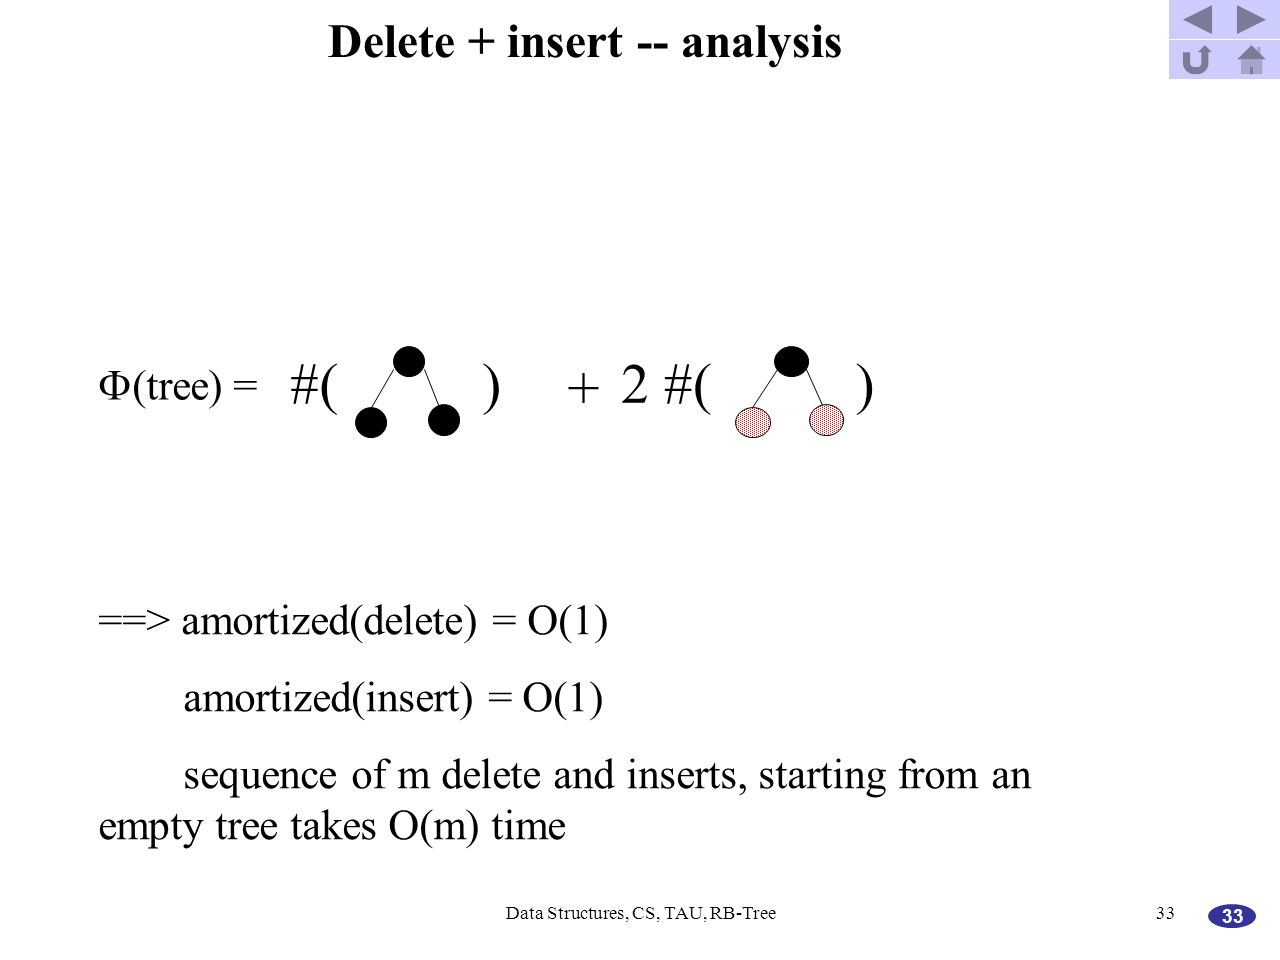 33 Data Structures, CS, TAU, RB-Tree33 Delete + insert -- analysis  (tree) = #() + 2 #() ==> amortized(delete) = O(1) amortized(insert) = O(1) sequen